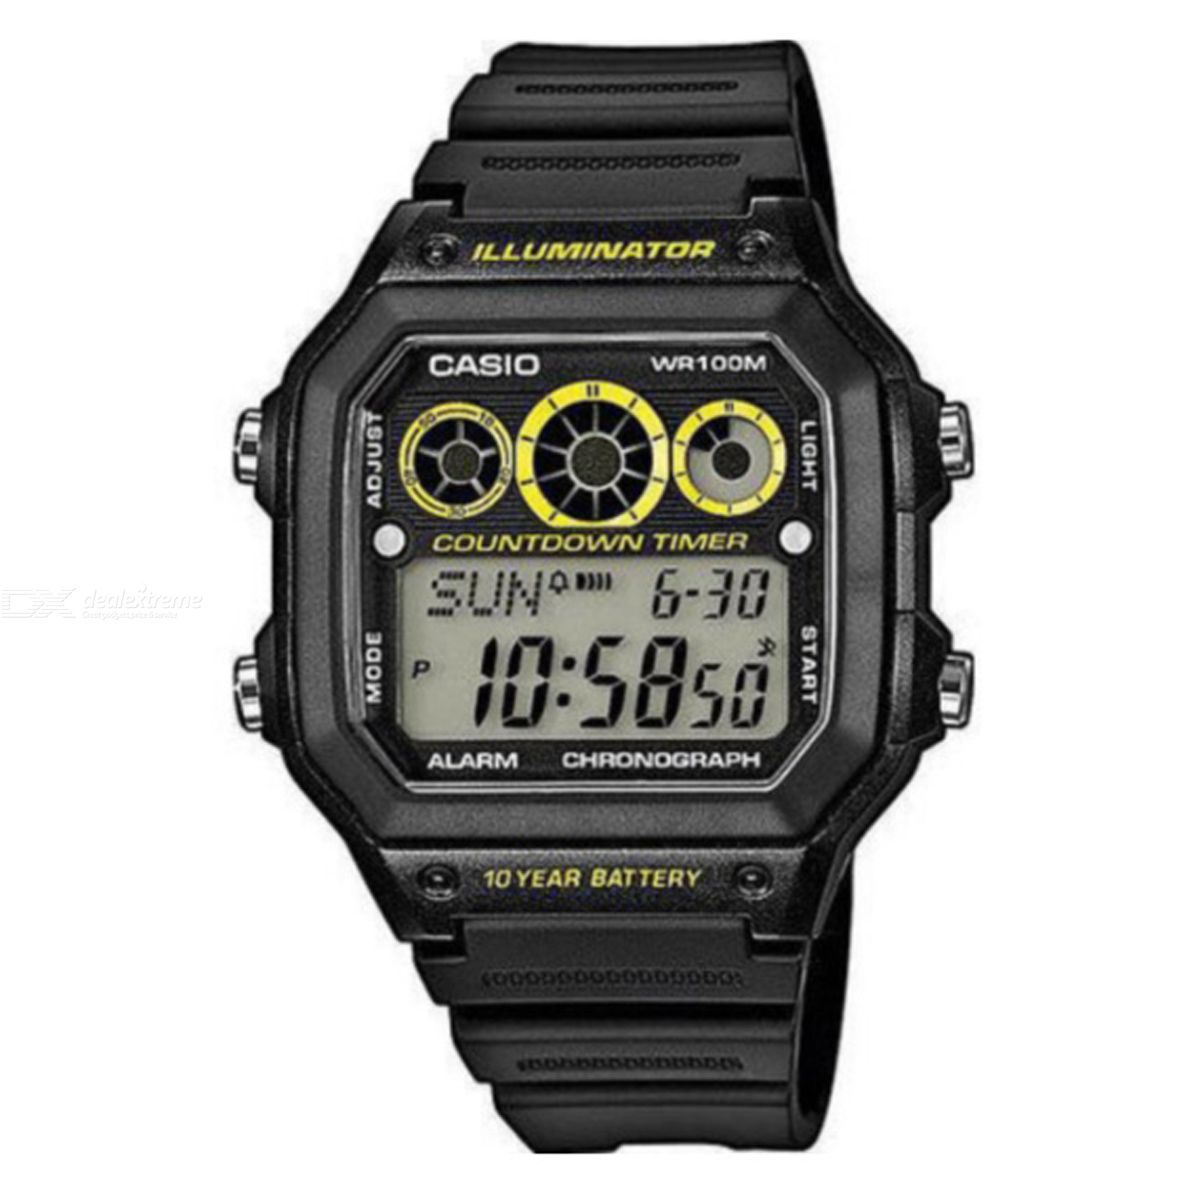 b23cbae9f957 Casio AE-1300WH-1AVDF Digital Alarm Watch - Black Yellow (Without Box) -  Free shipping - DealExtreme